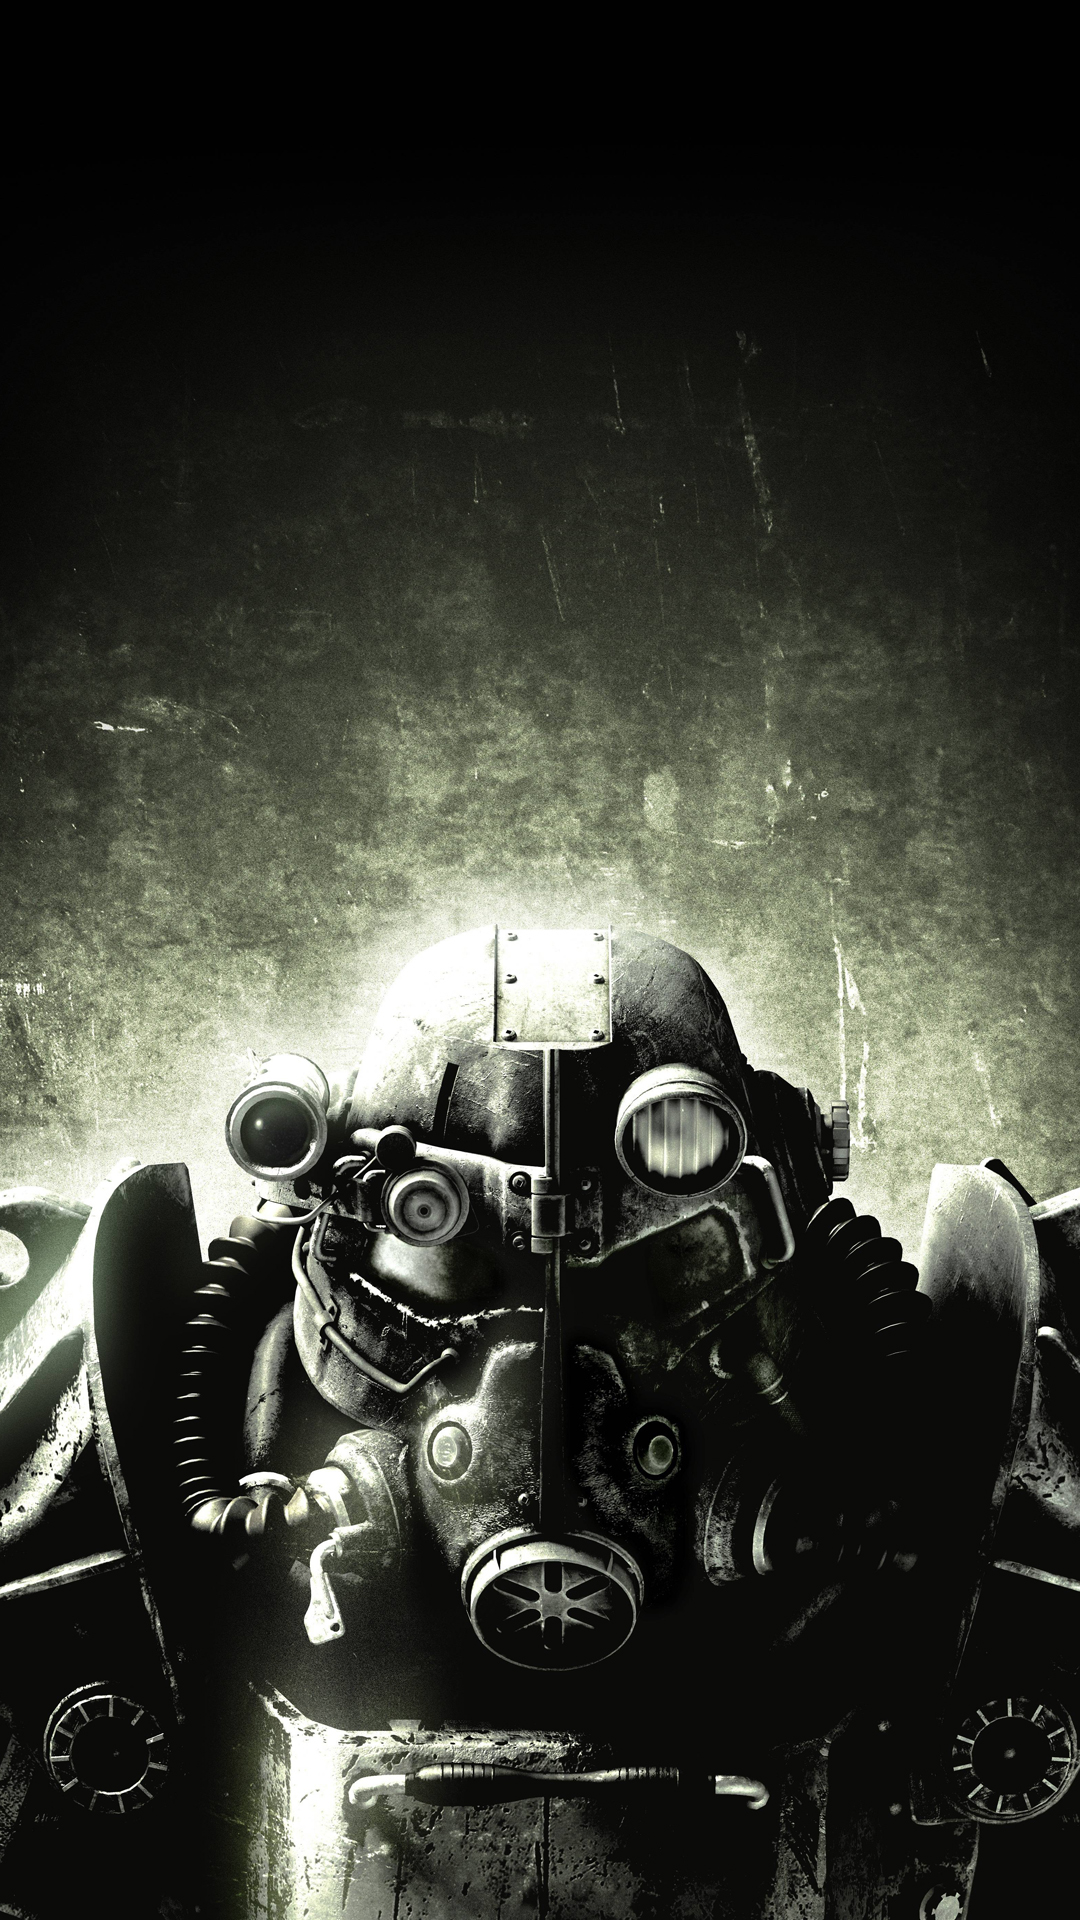 Fallout 4 htc one wallpaper best htc one wallpapers fallout 4 htc one wallpaper voltagebd Images